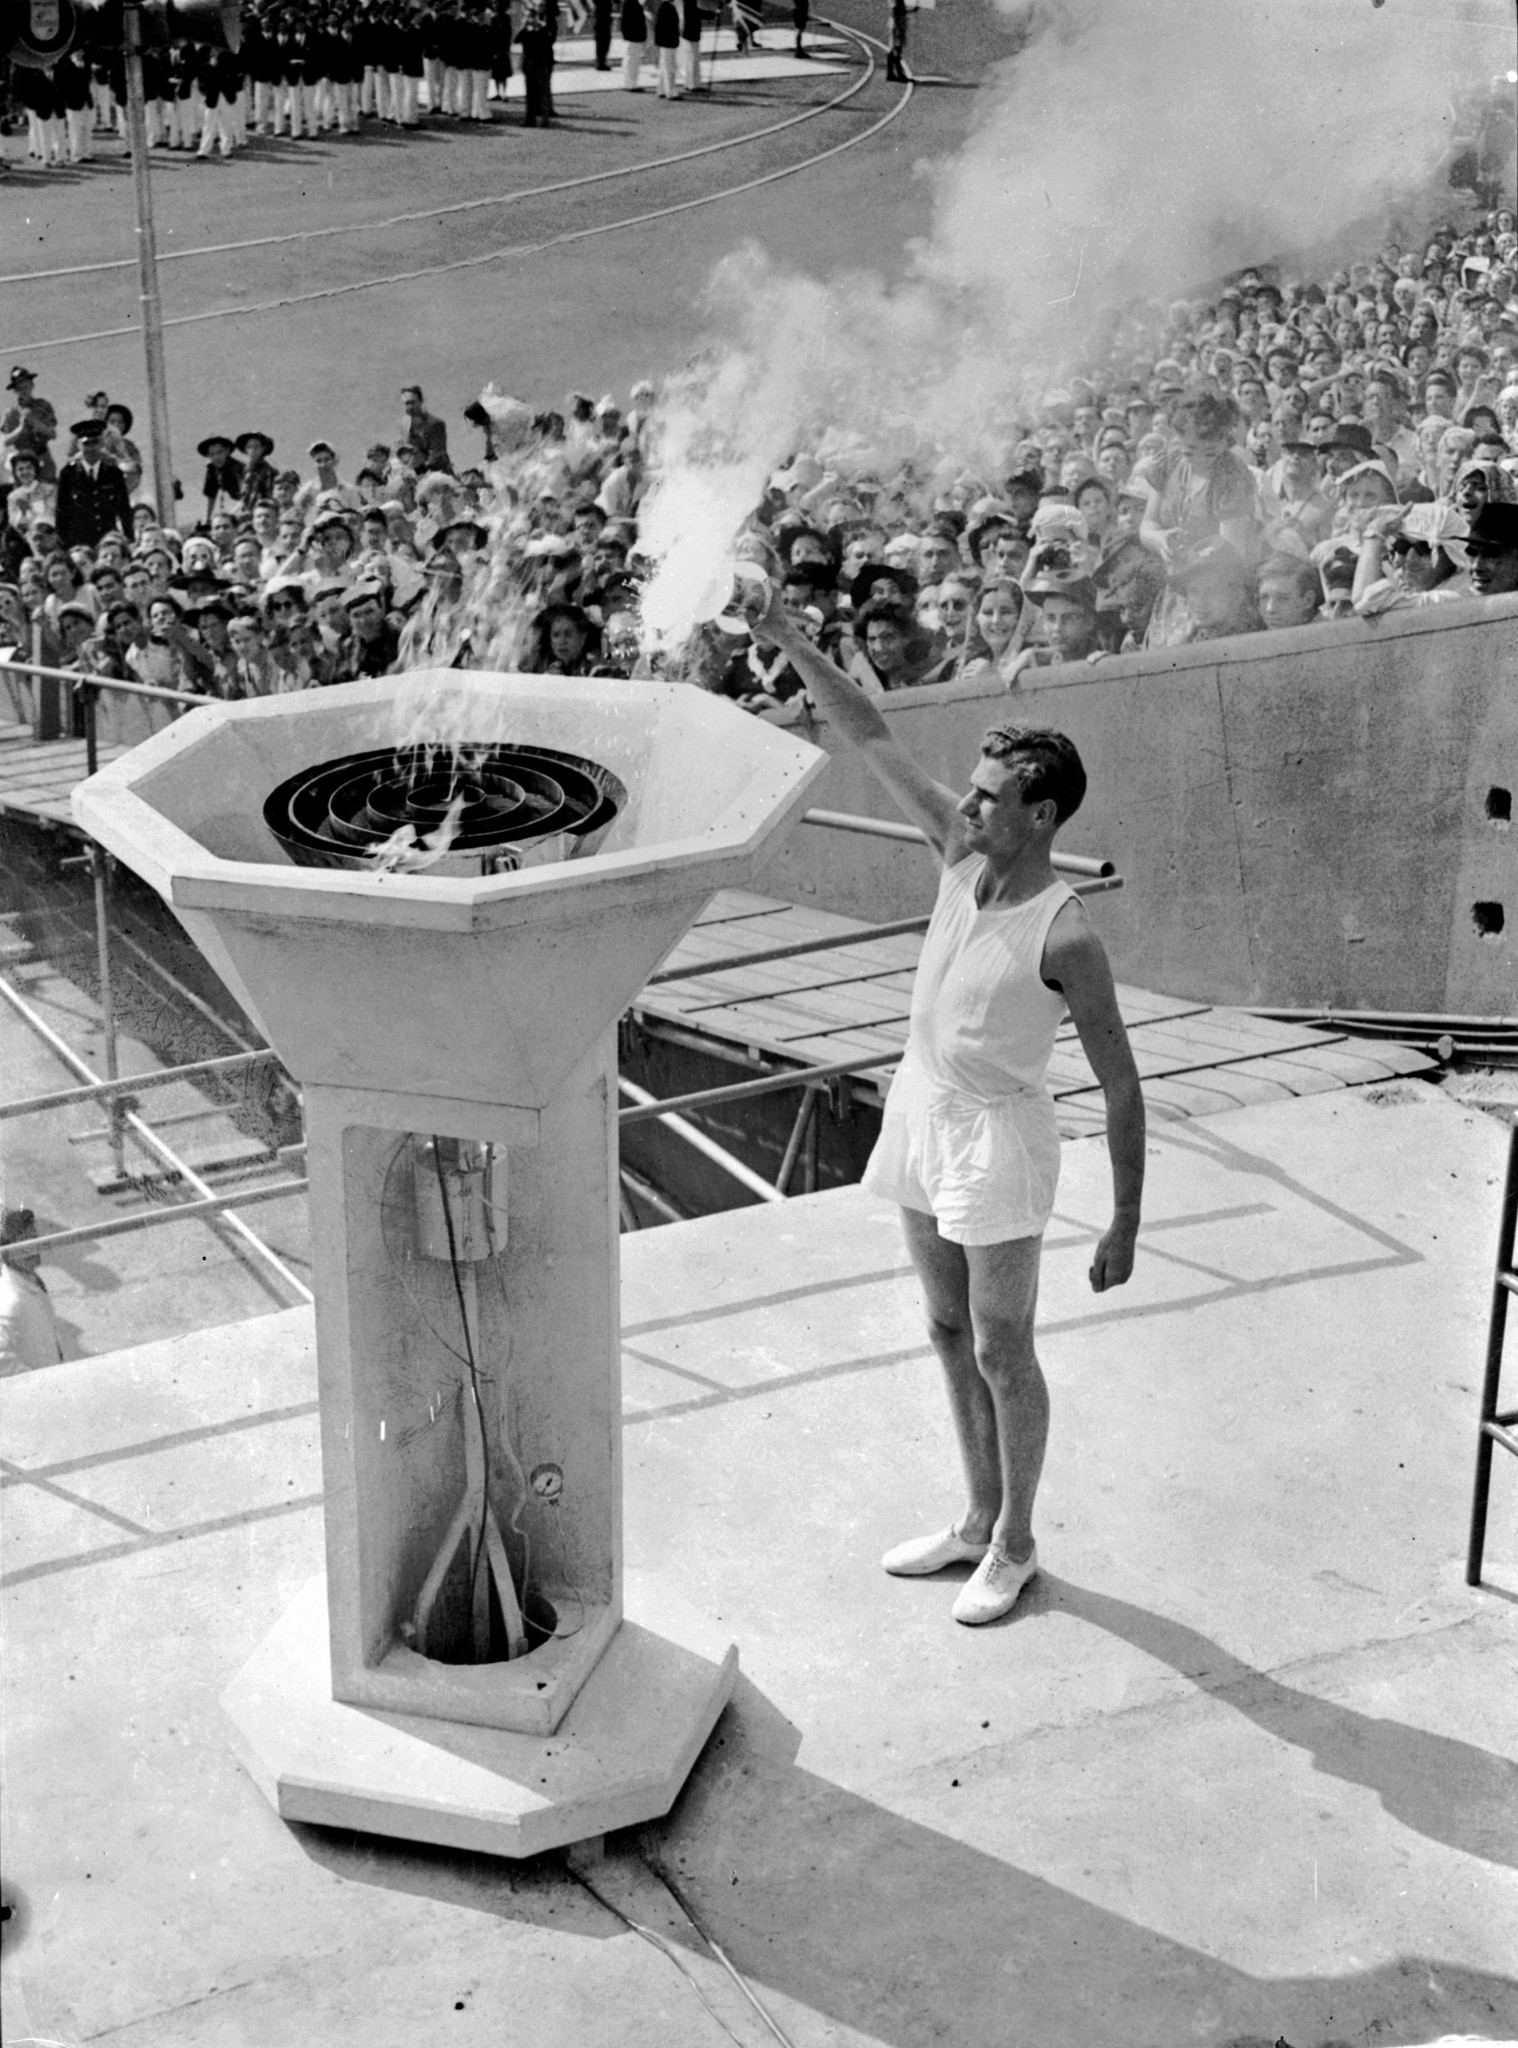 The Olympic Torch is lit at the London 1948 Games ©Getty Images